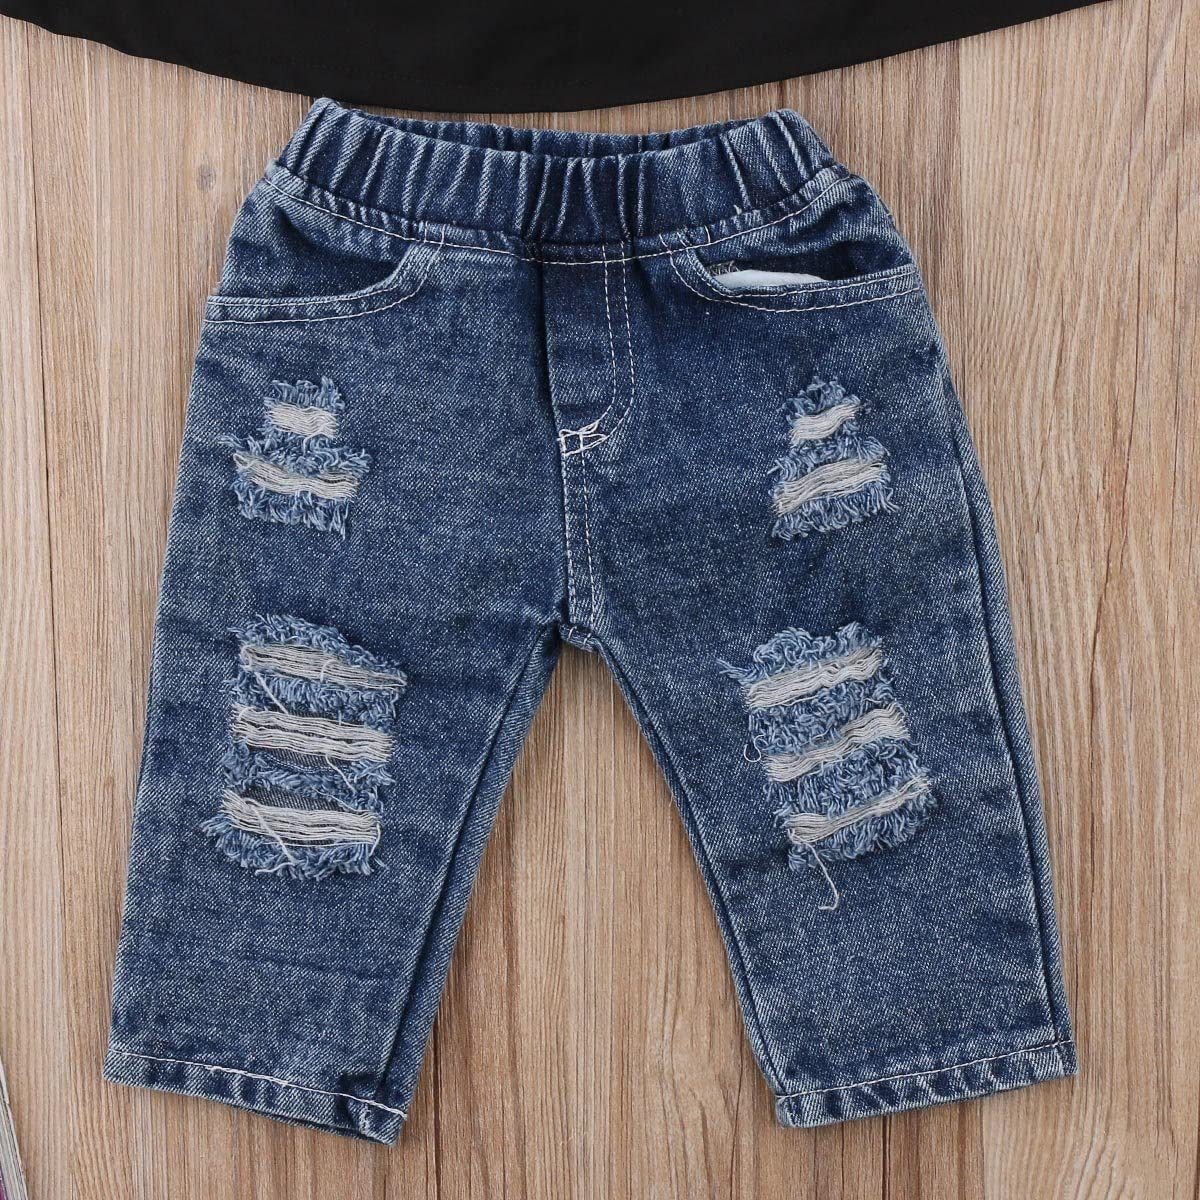 Emmababy Toddler Girls Clothes Kids Baby Off Shoulder Tops Fall Ruffle Sleeve Shirt+Ripped Jeans Long Pants Denim Outfit